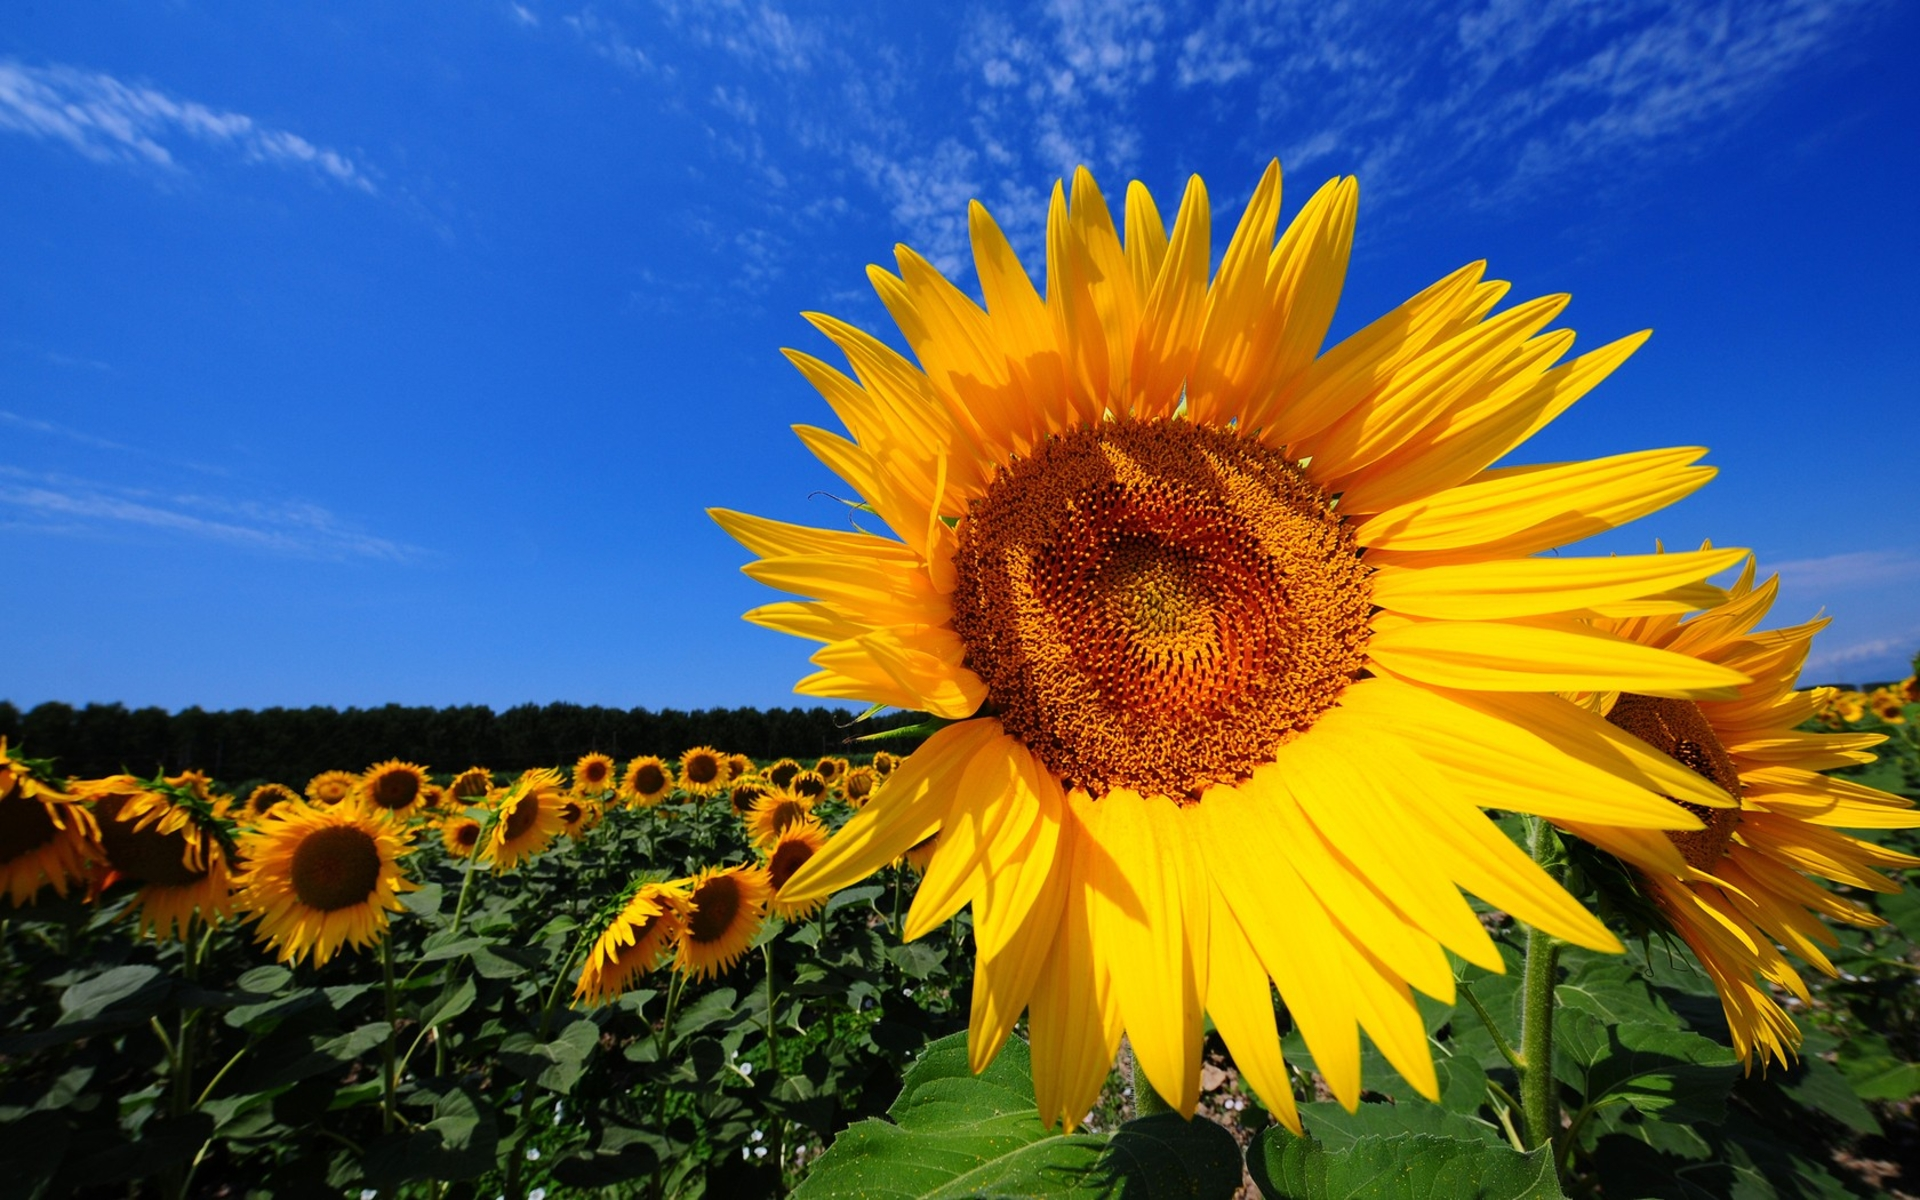 Thankful Wallpaper Quotes Magnificent Sunflower Fields And Interesting Facts About